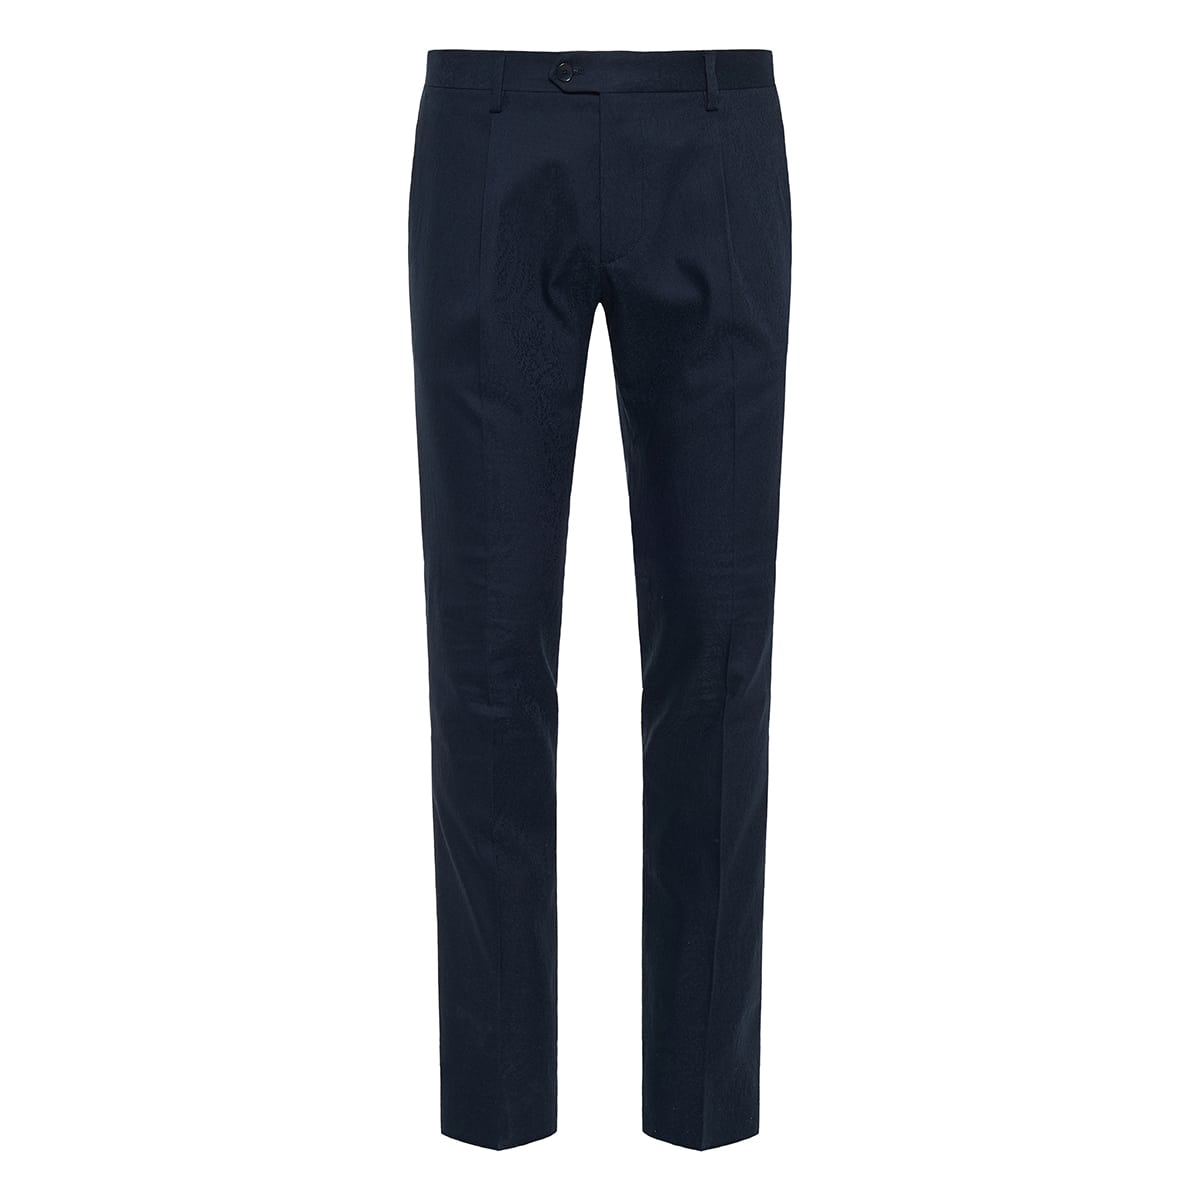 Paisley tailored trousers